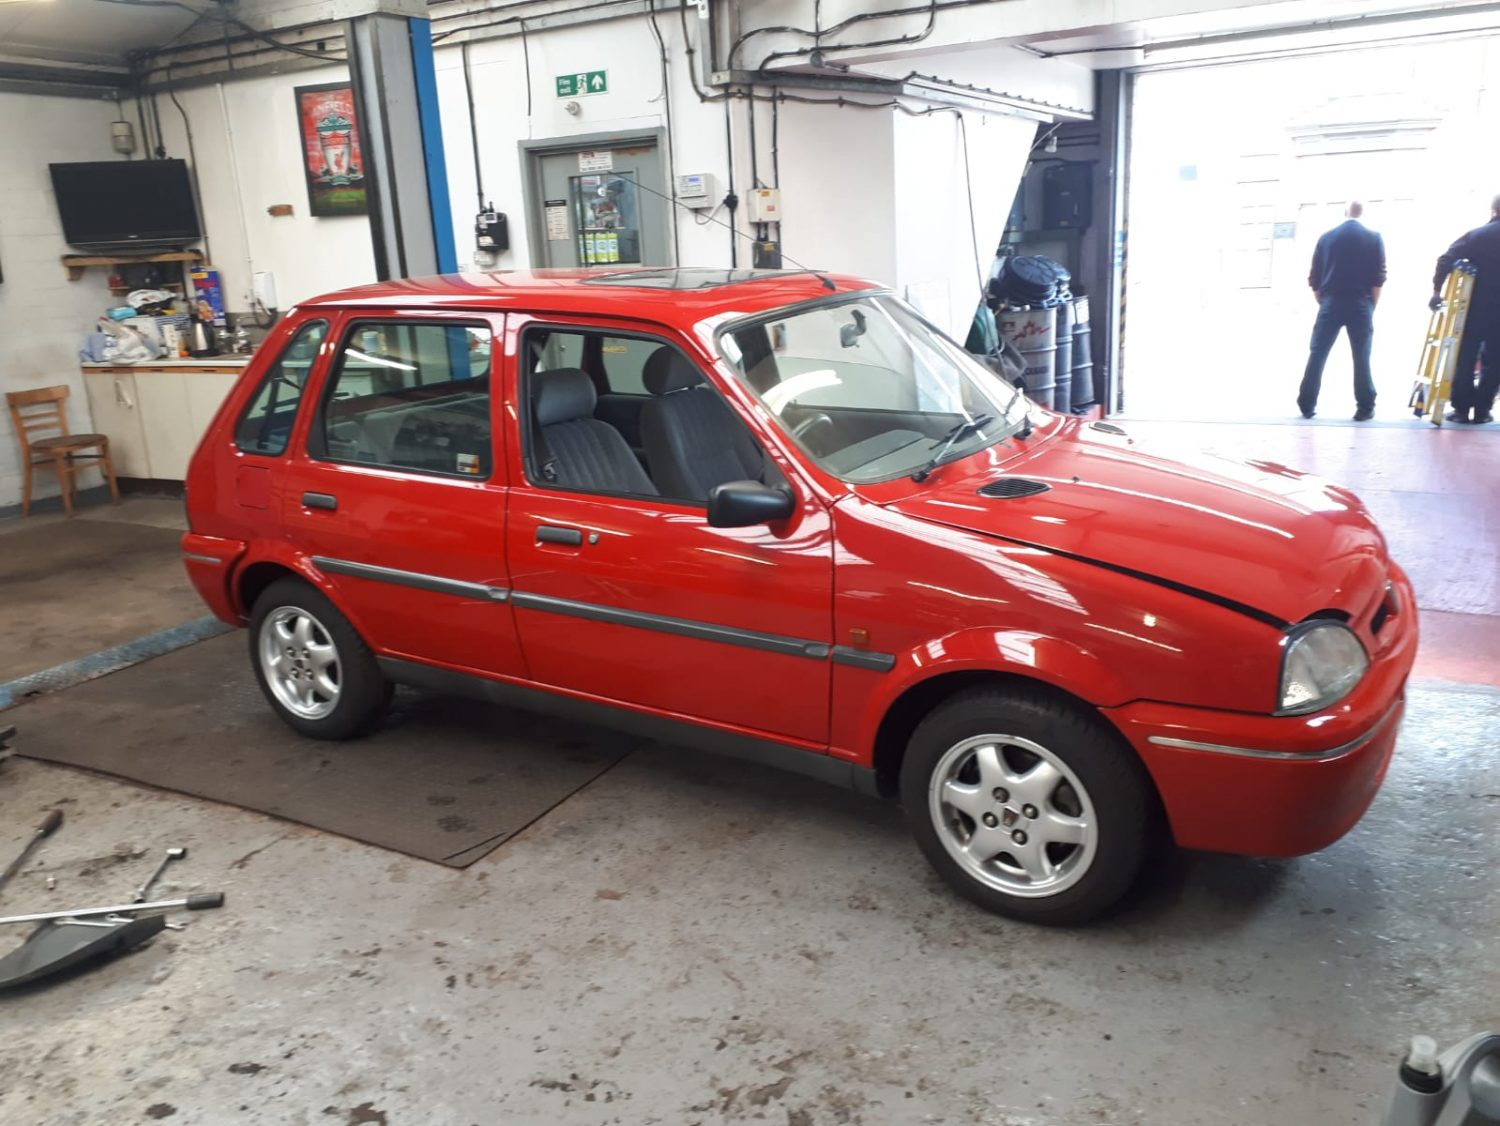 Richard's Mini Metro at the VFR Motors Garage in Leicester